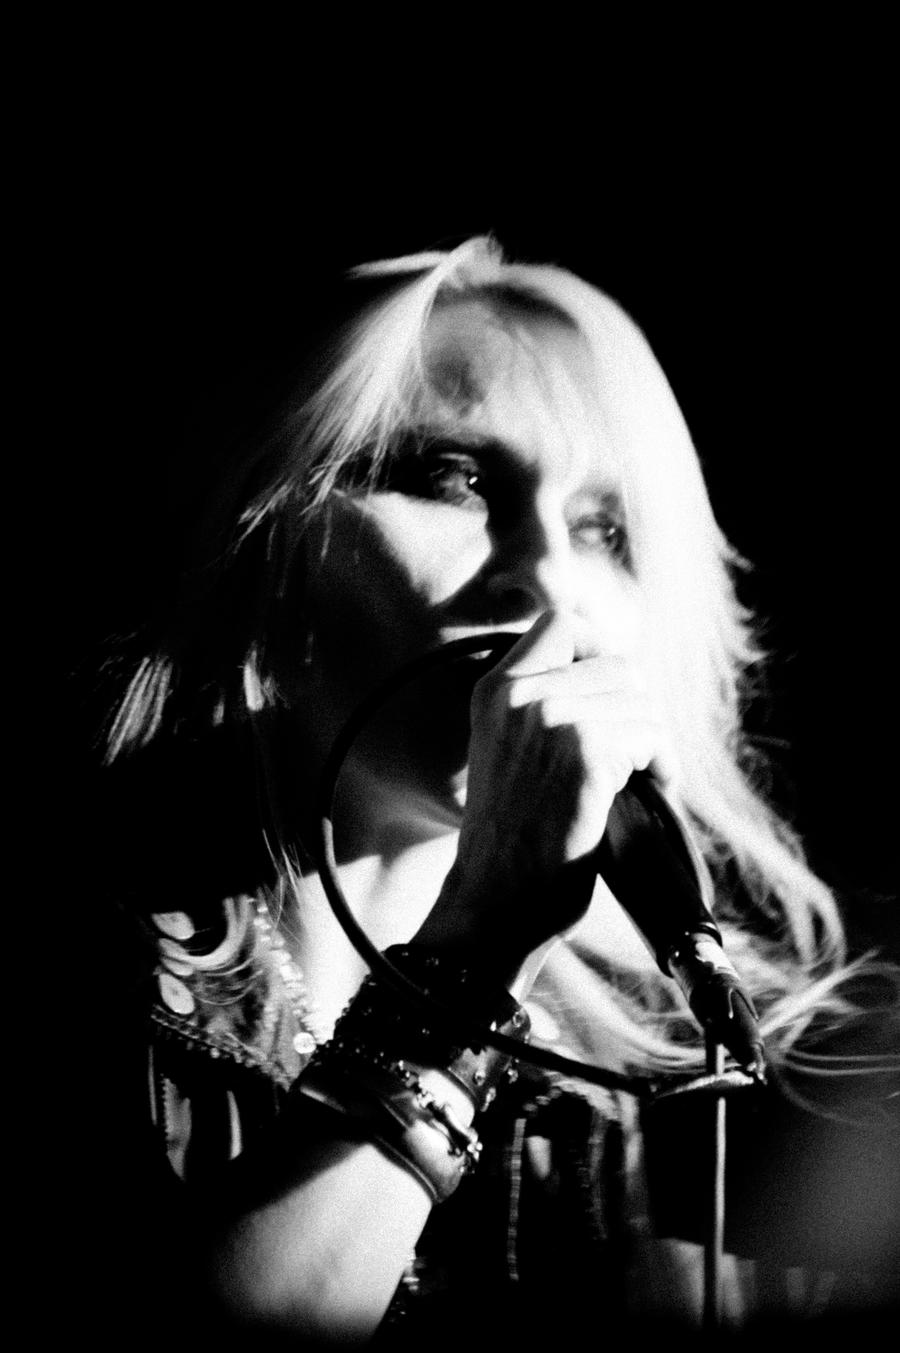 Doro Pesch live unplugged by woodfaery